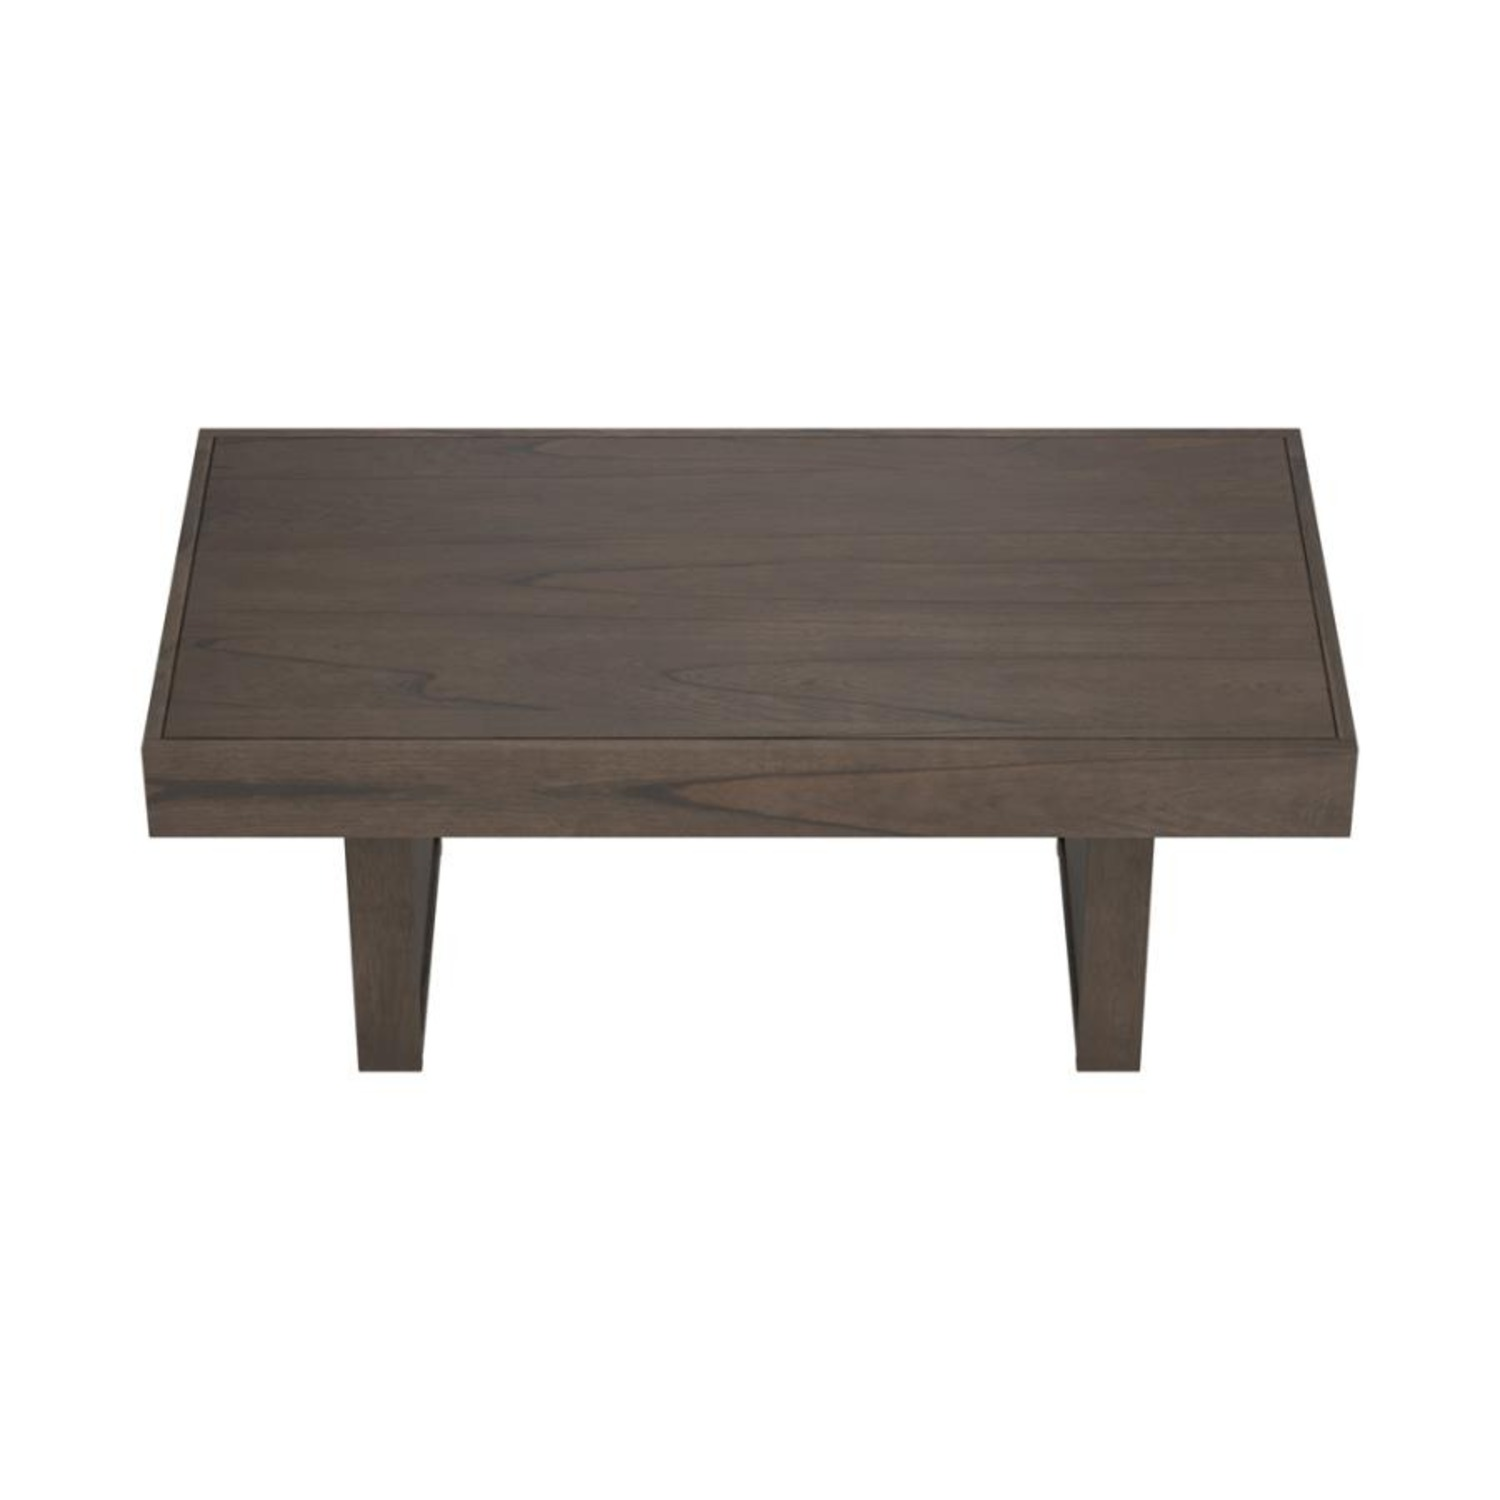 Coffee Table In Wheat Brown Finish - image-3